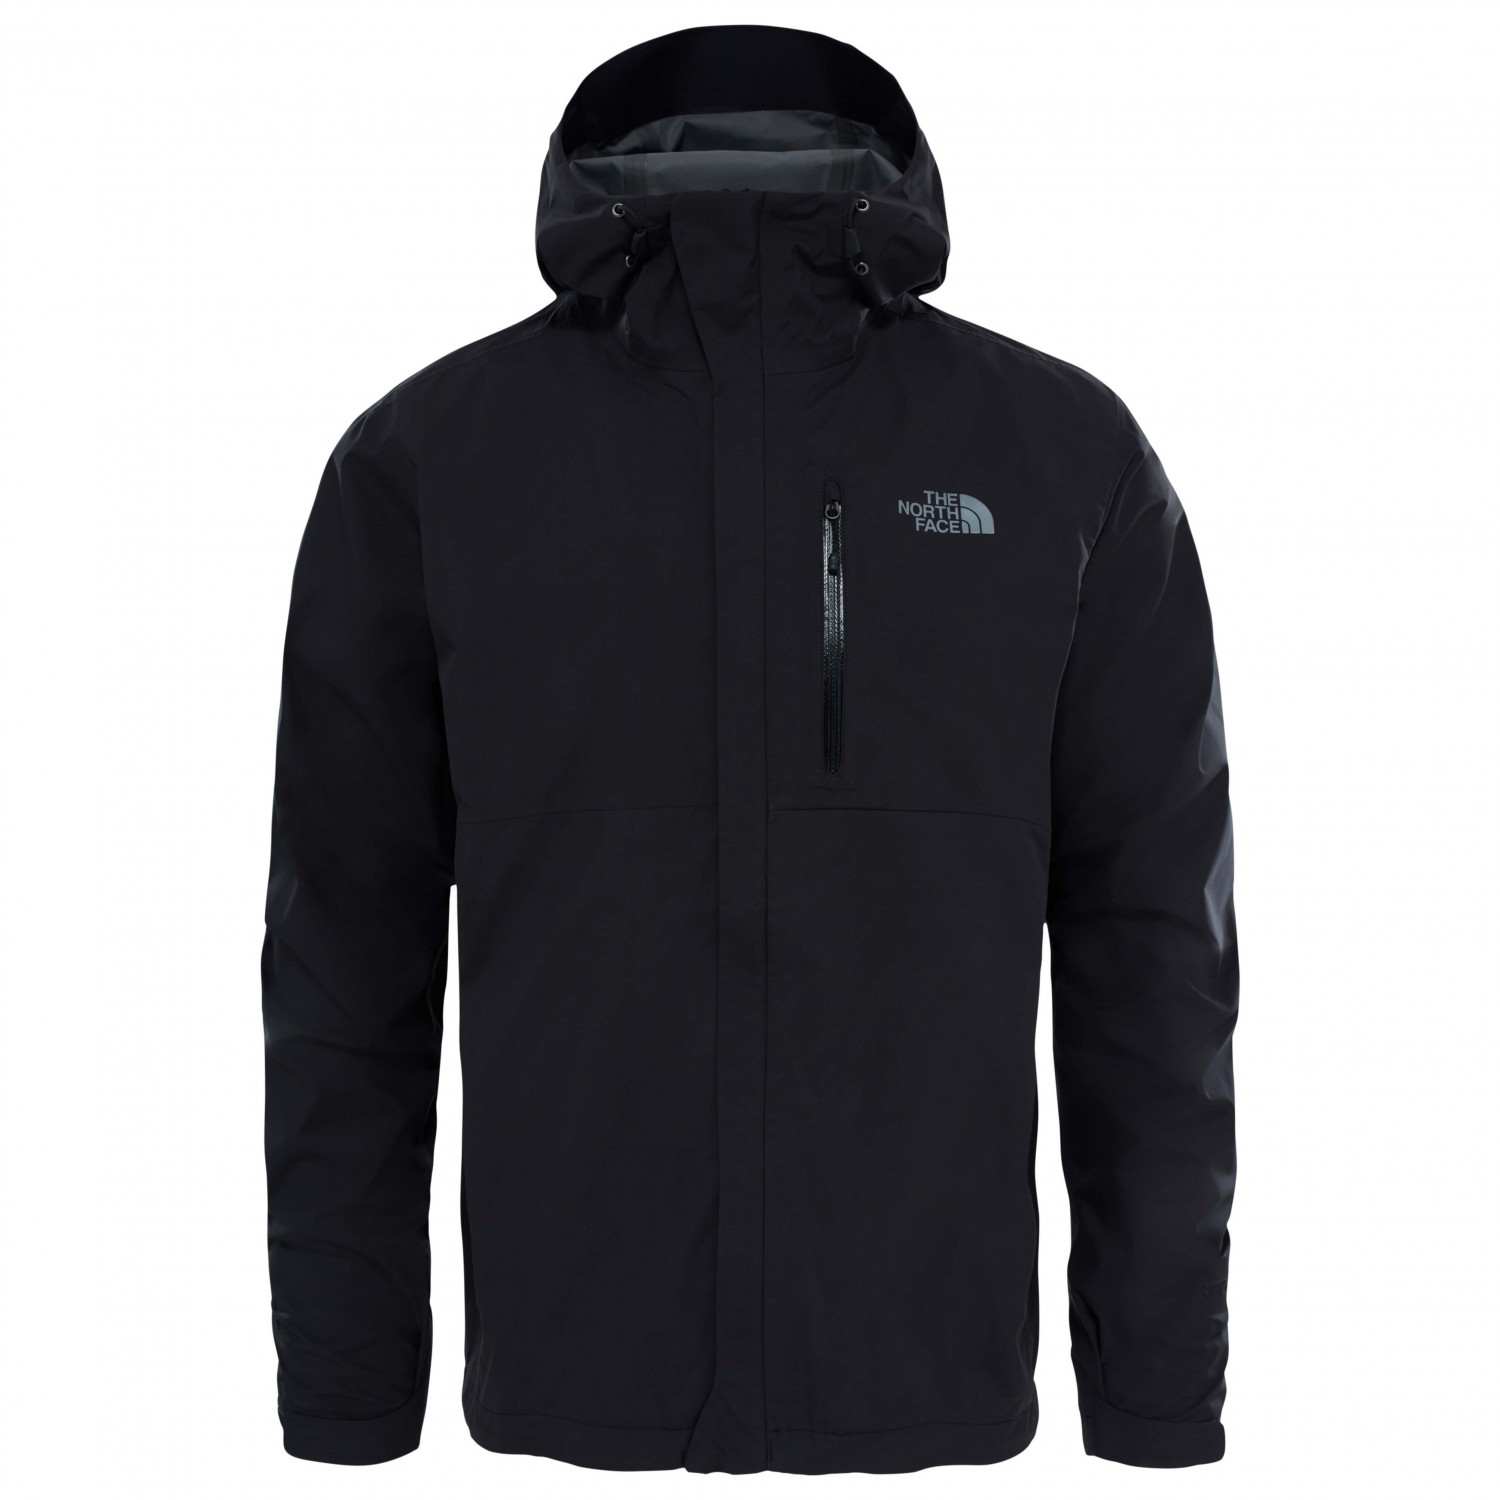 The North Face Dryzzle Jacket Hardshelljacke TNF Black | S